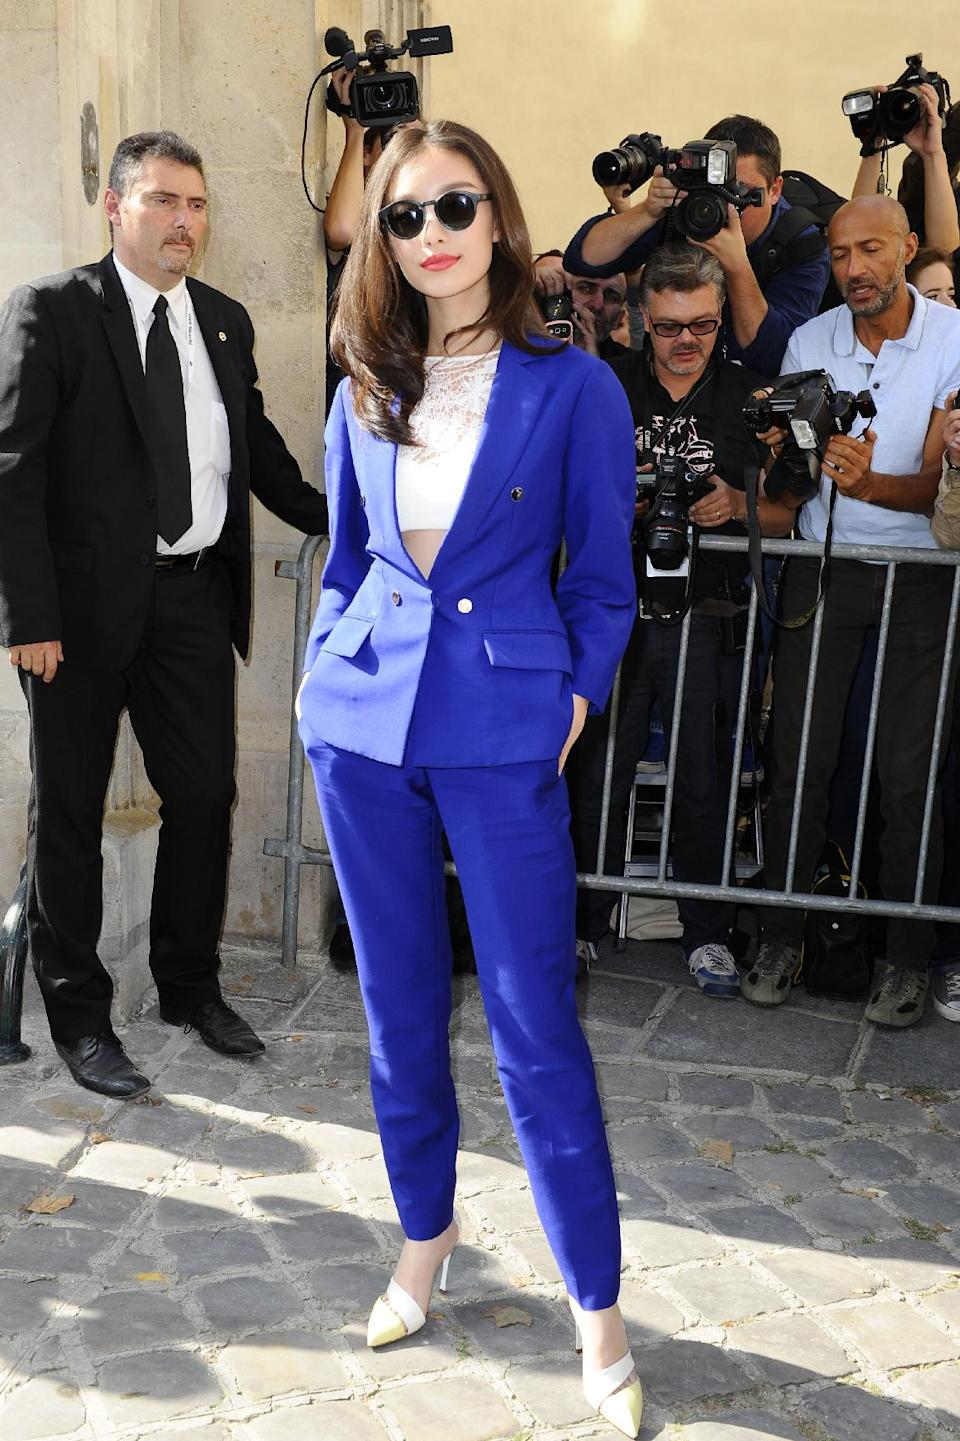 Actress Ni Ni arrives to attend Christian Dior's ready-to-wear Spring/Summer 2014 fashion collection, presented Friday, Sept. 27, 2013 in Paris. (AP Photo/Zacharie Scheurer)